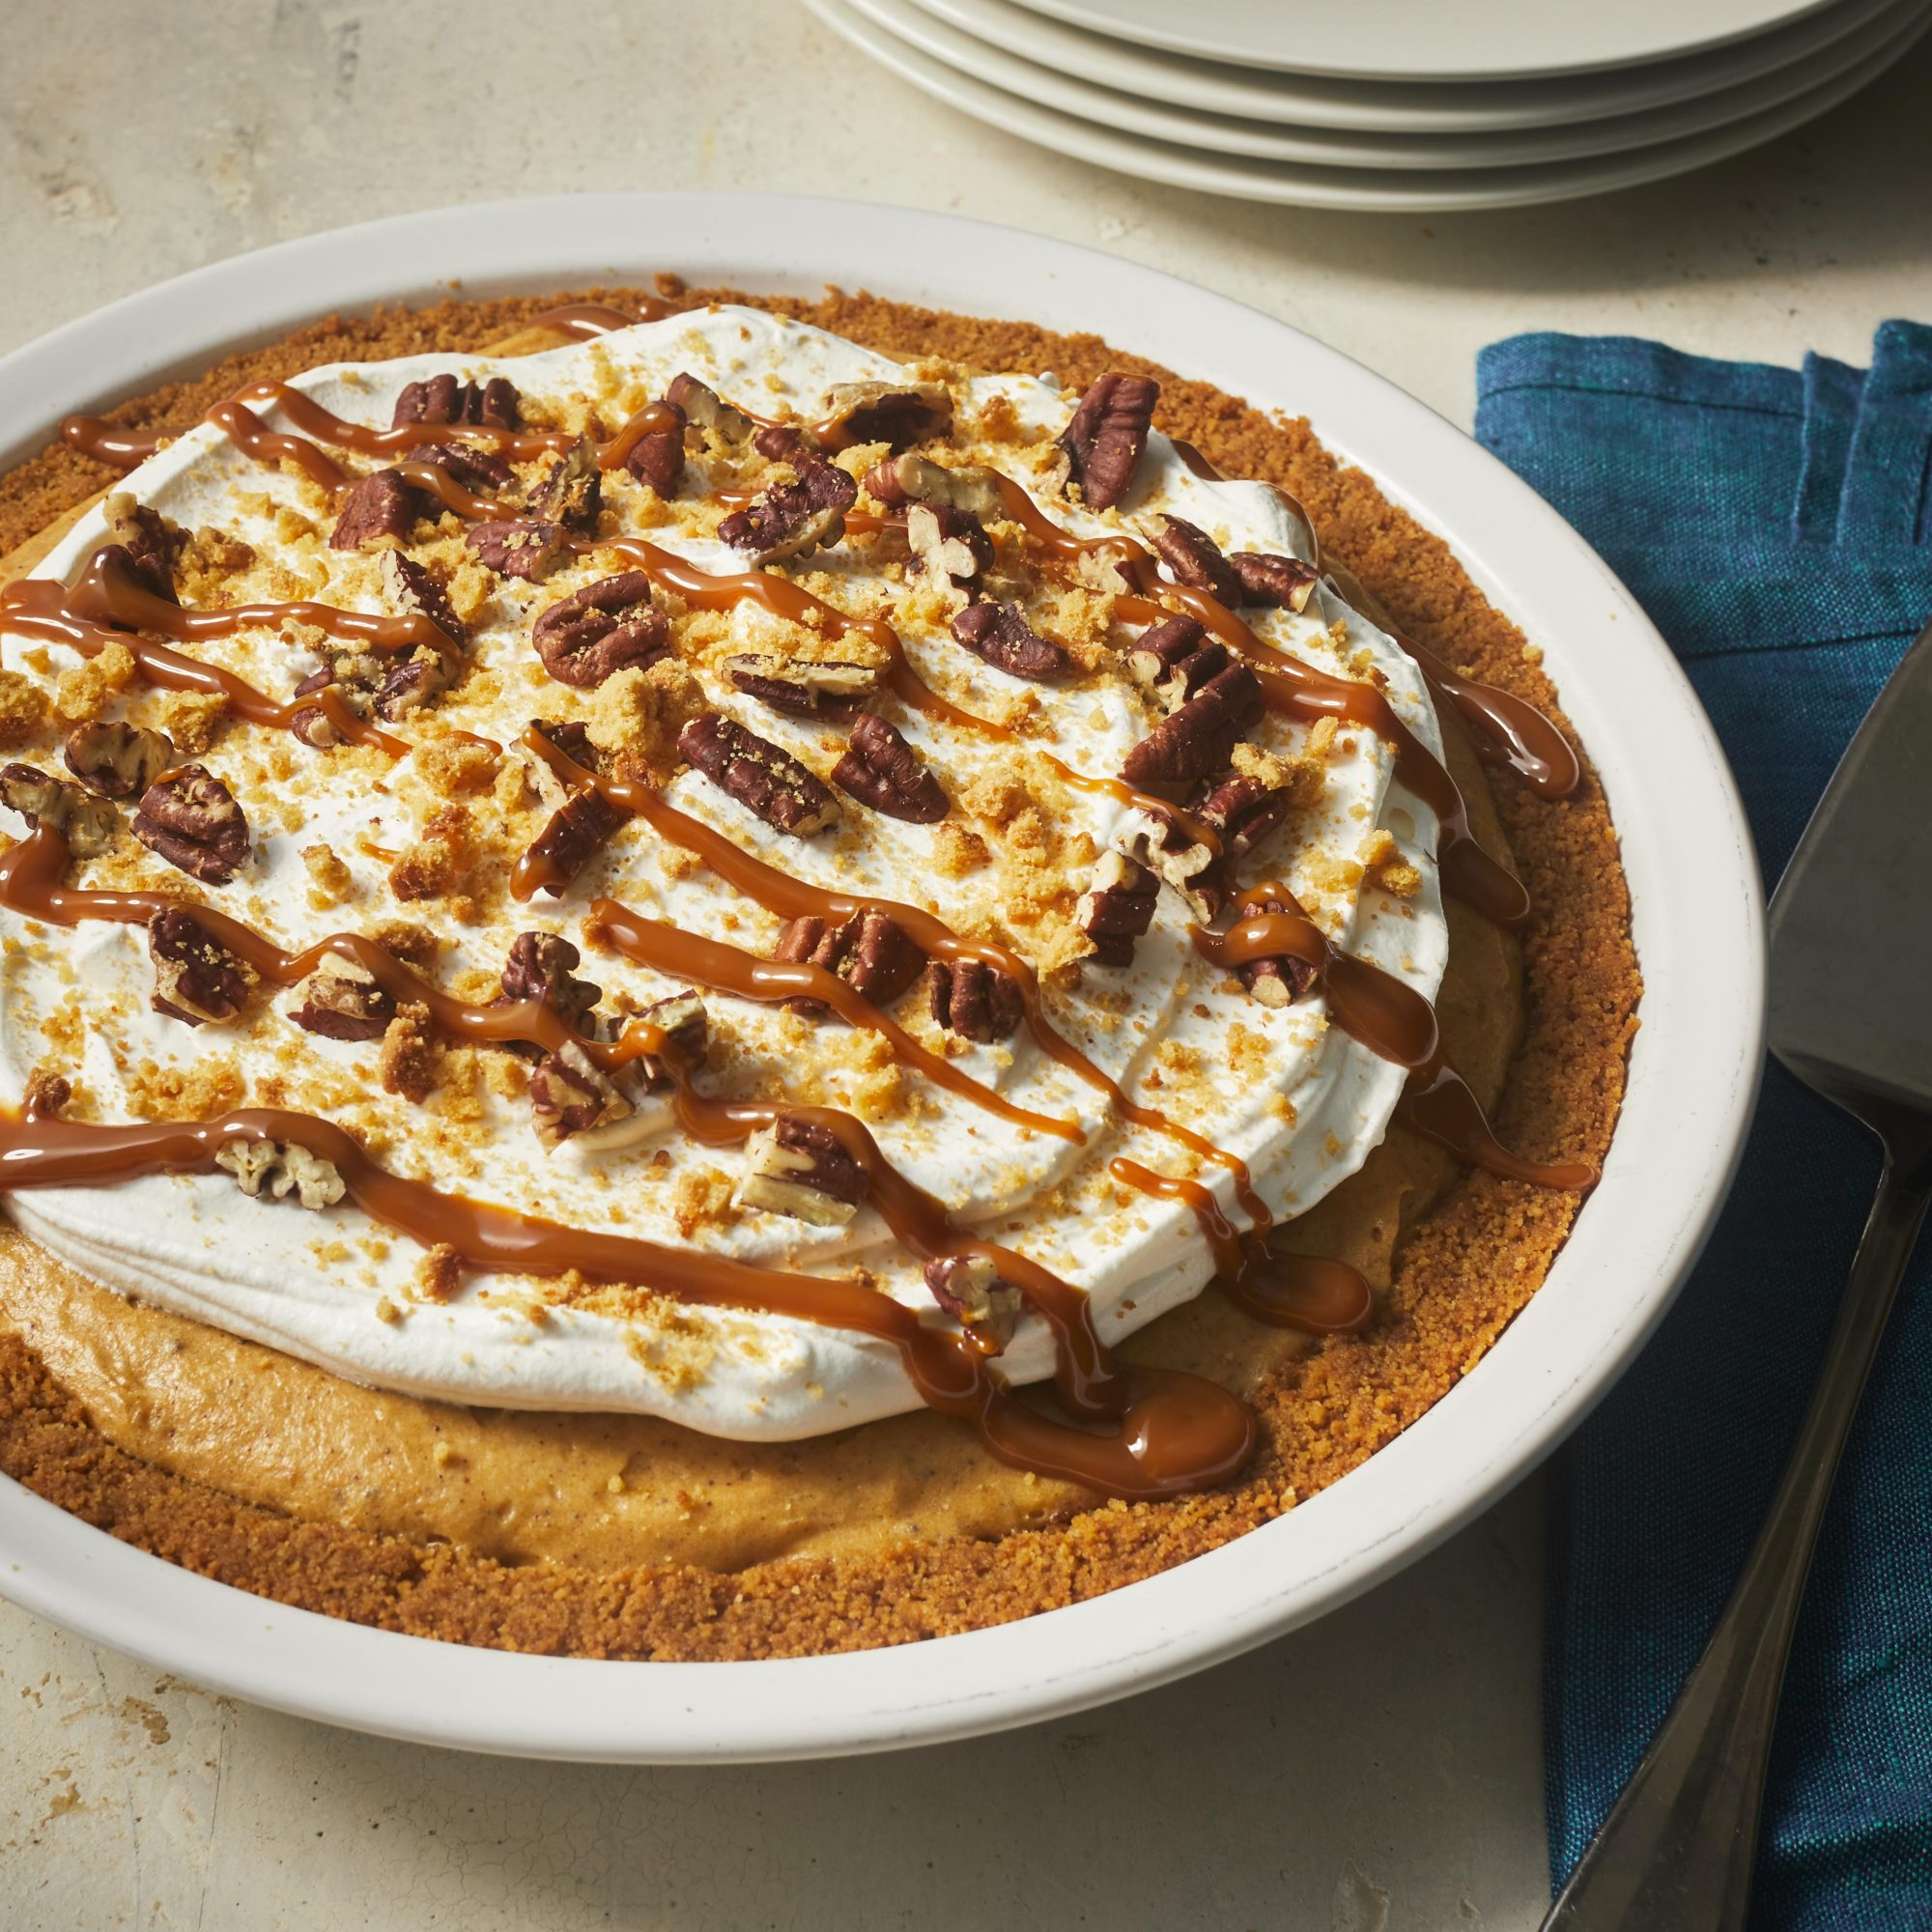 Whole pumpkin pie with whipped cream, nuts, and caramel on top.